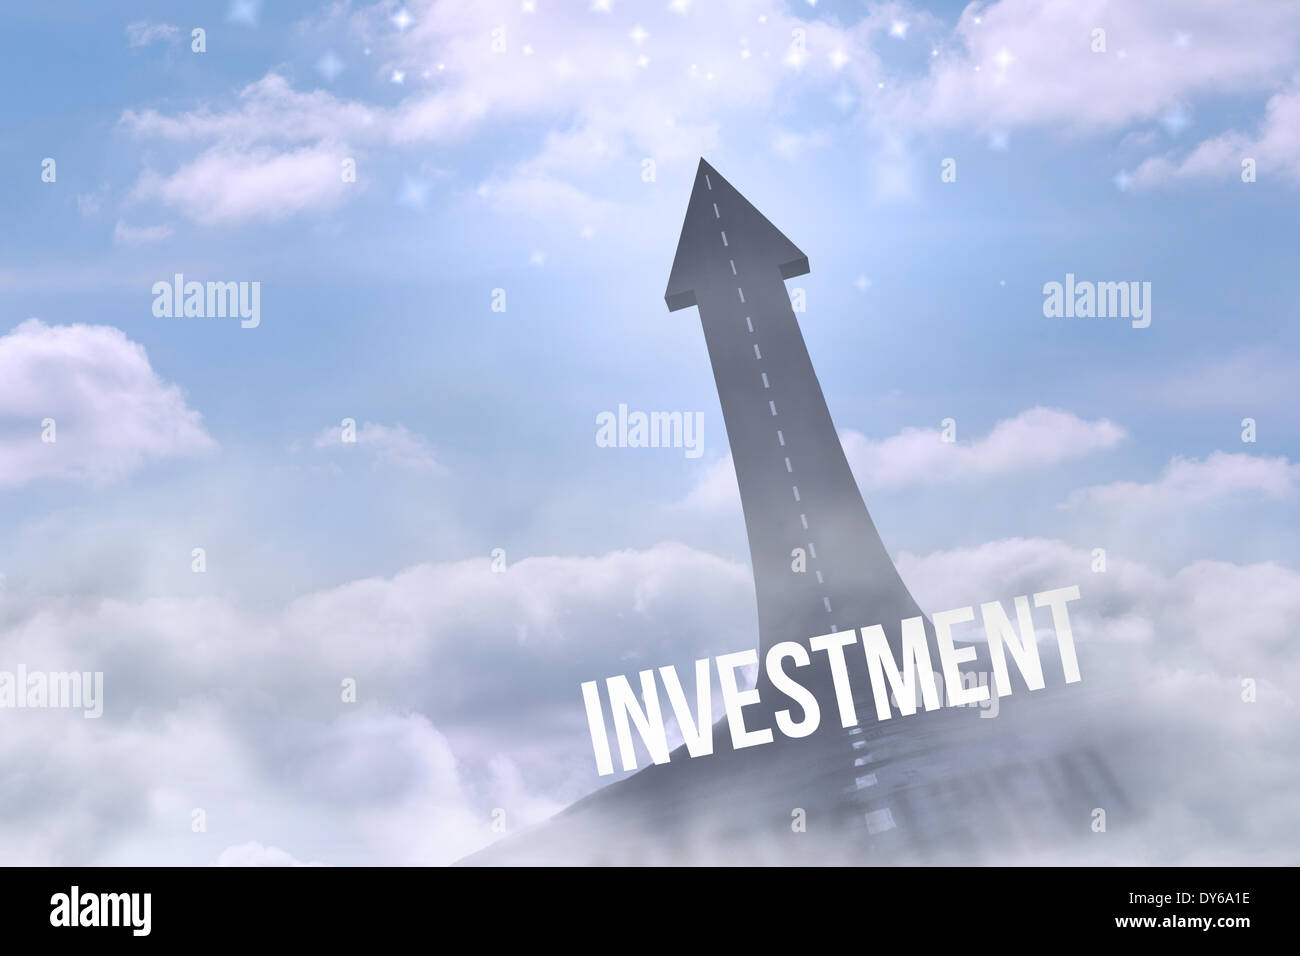 Investment against road turning into arrow - Stock Image